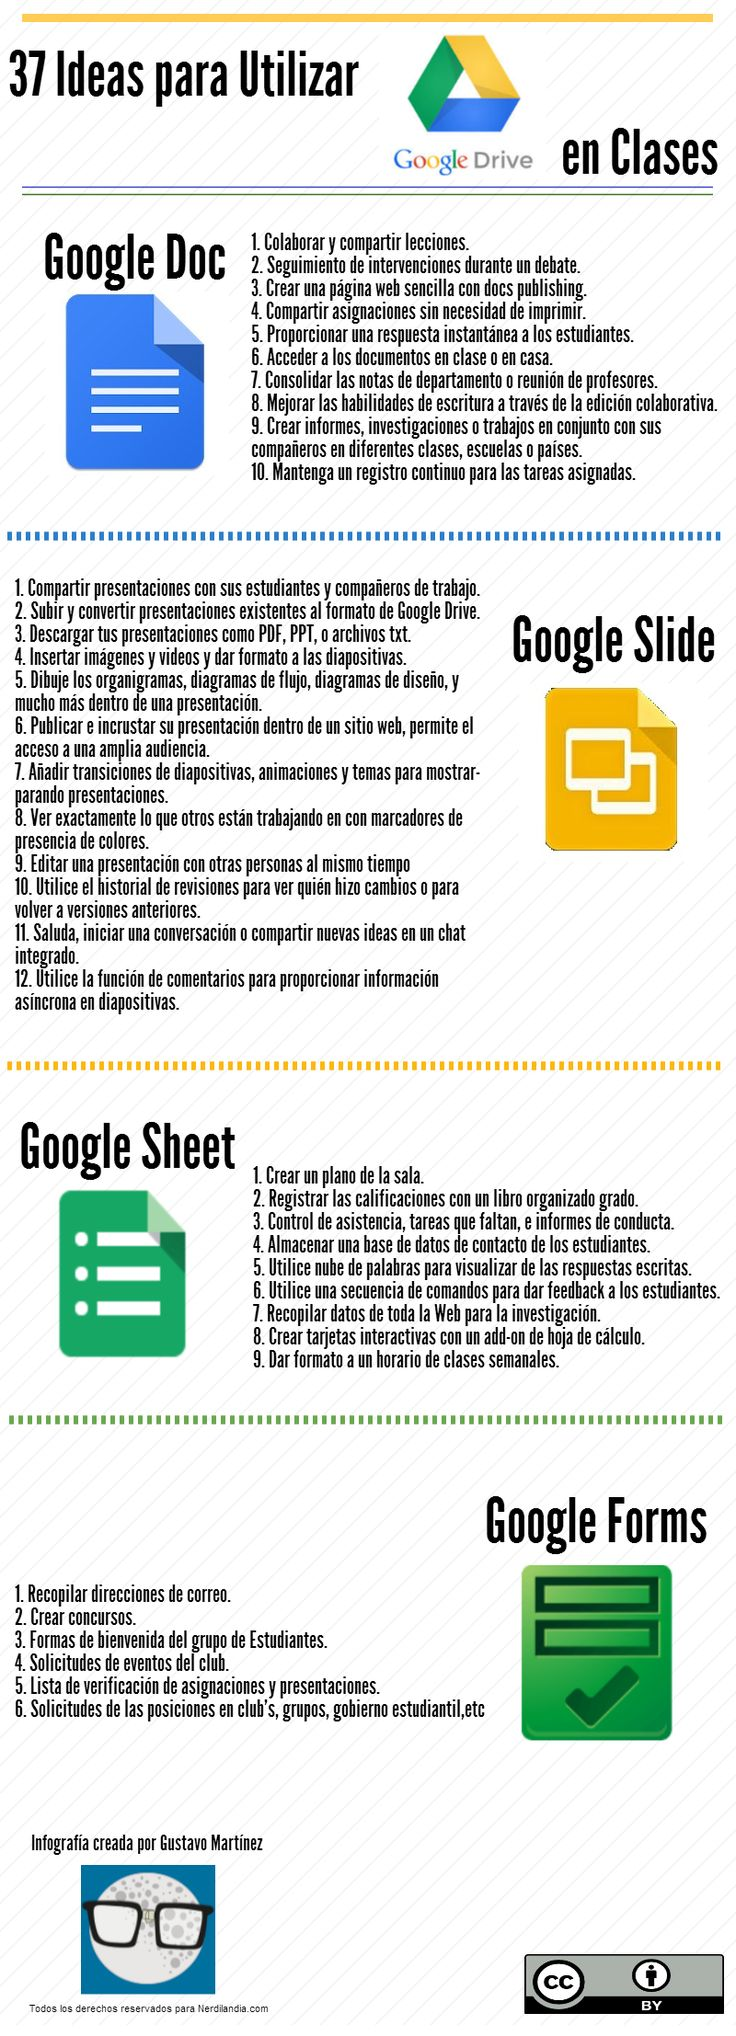 37 ideas para usar Google Drive en clase #infografia #infographic #education